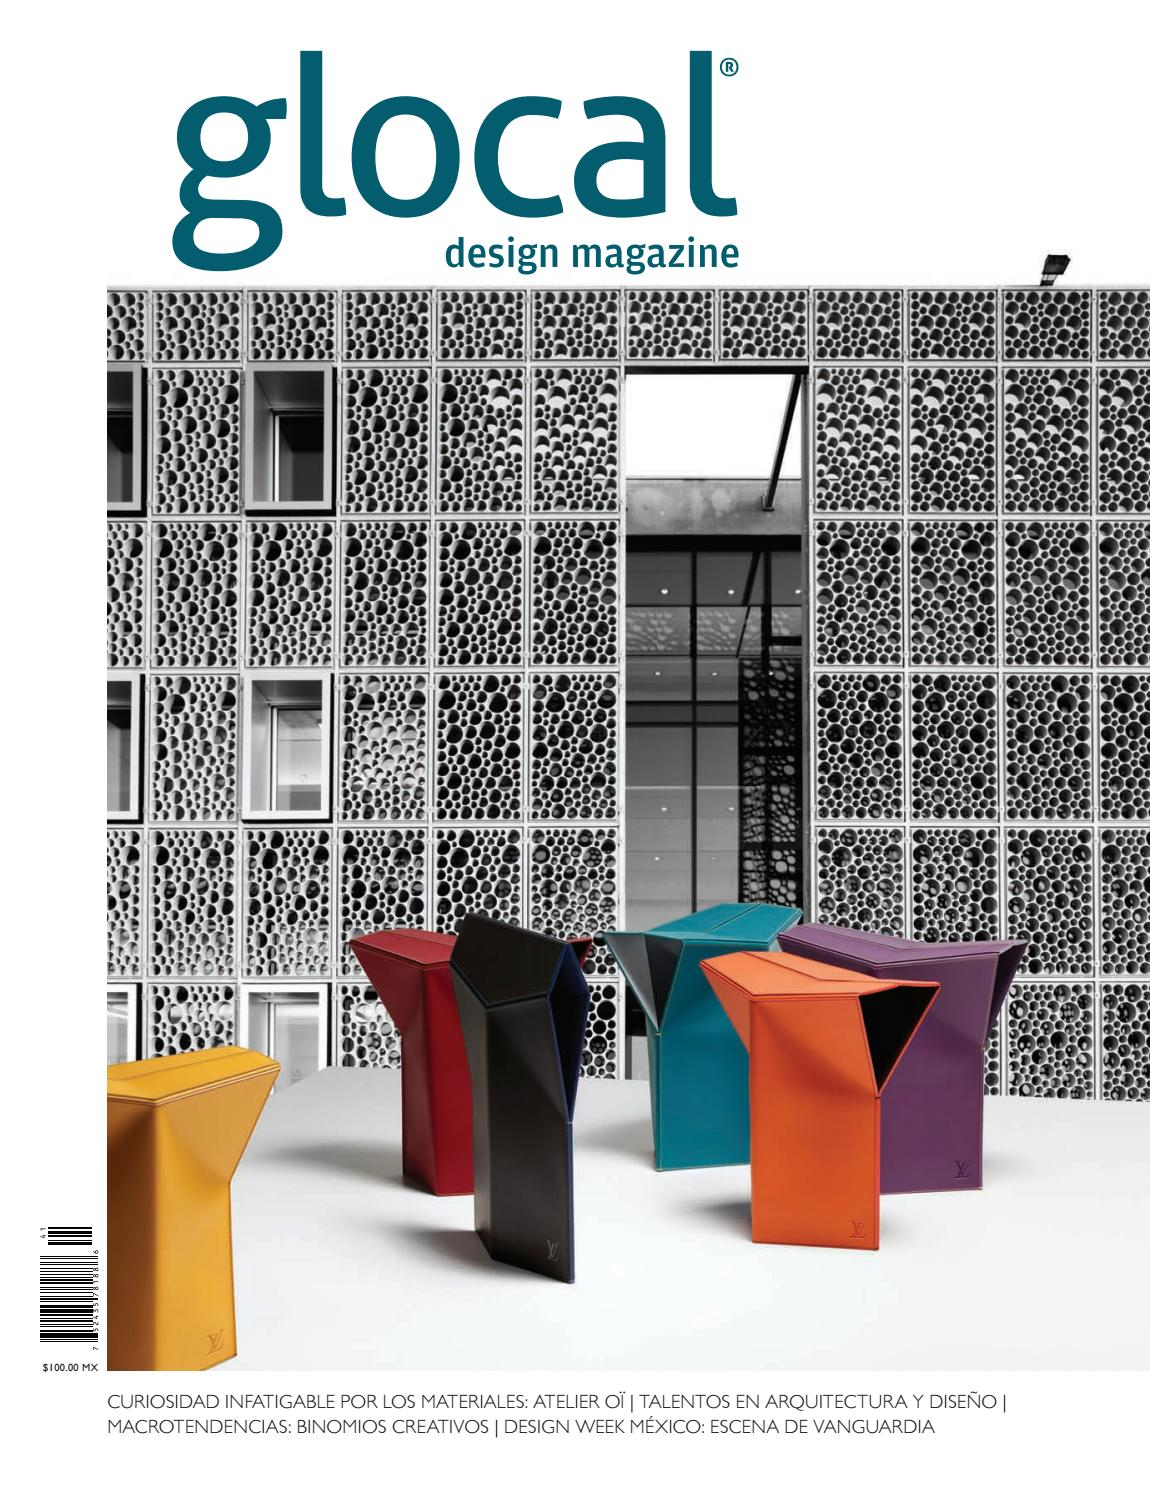 Glocal Design Magazine No 41 Portada Por Cover By Atelier O  # Ad Hoc Muebles Veracruz